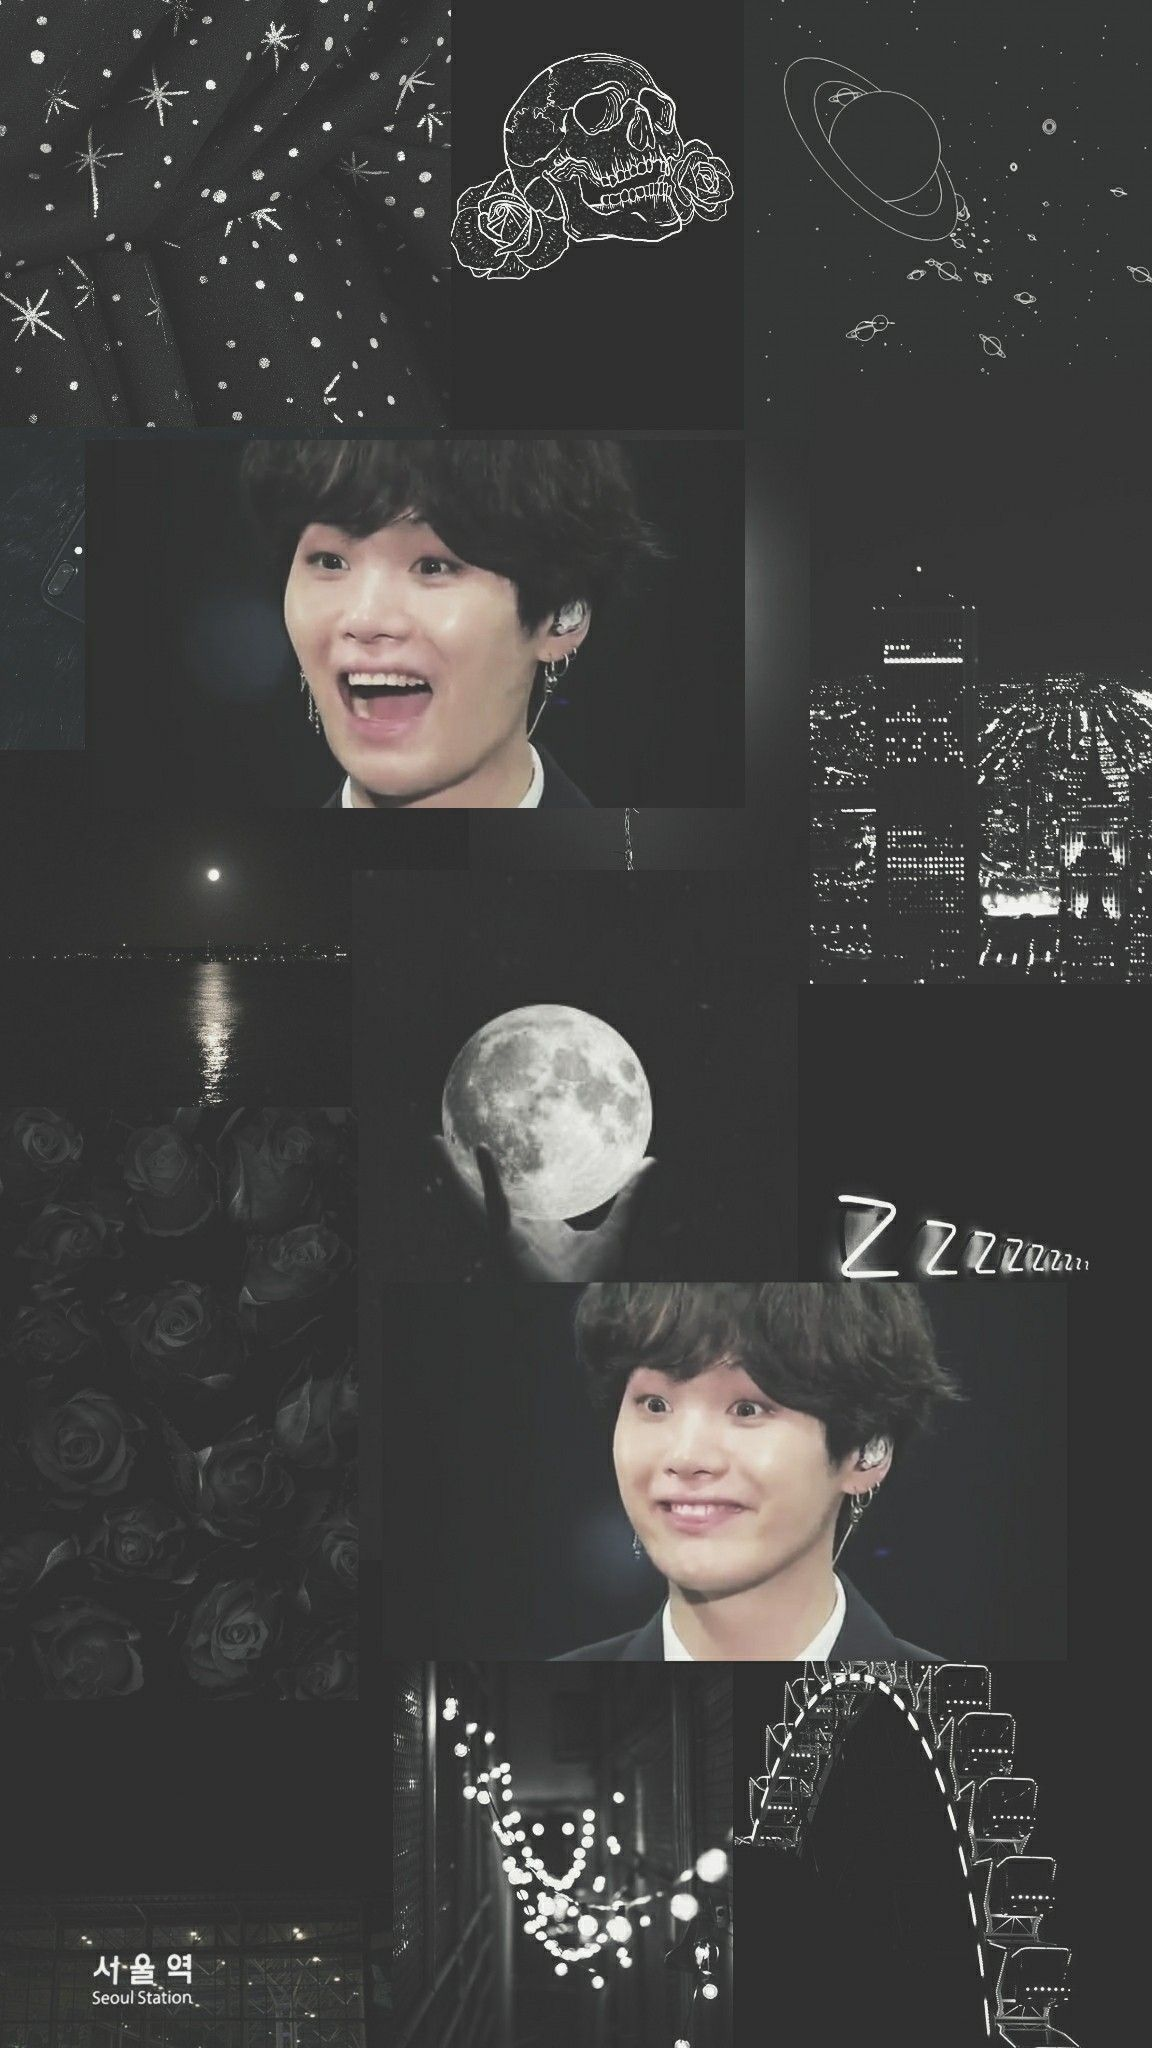 Yoongi Black Aesthetic Wallpaper Credits To Pinterest Yoongieah C If You Repost Give A Credits Please I Hope You Enjoy Y Gambar Fotografi Seni Fotografi